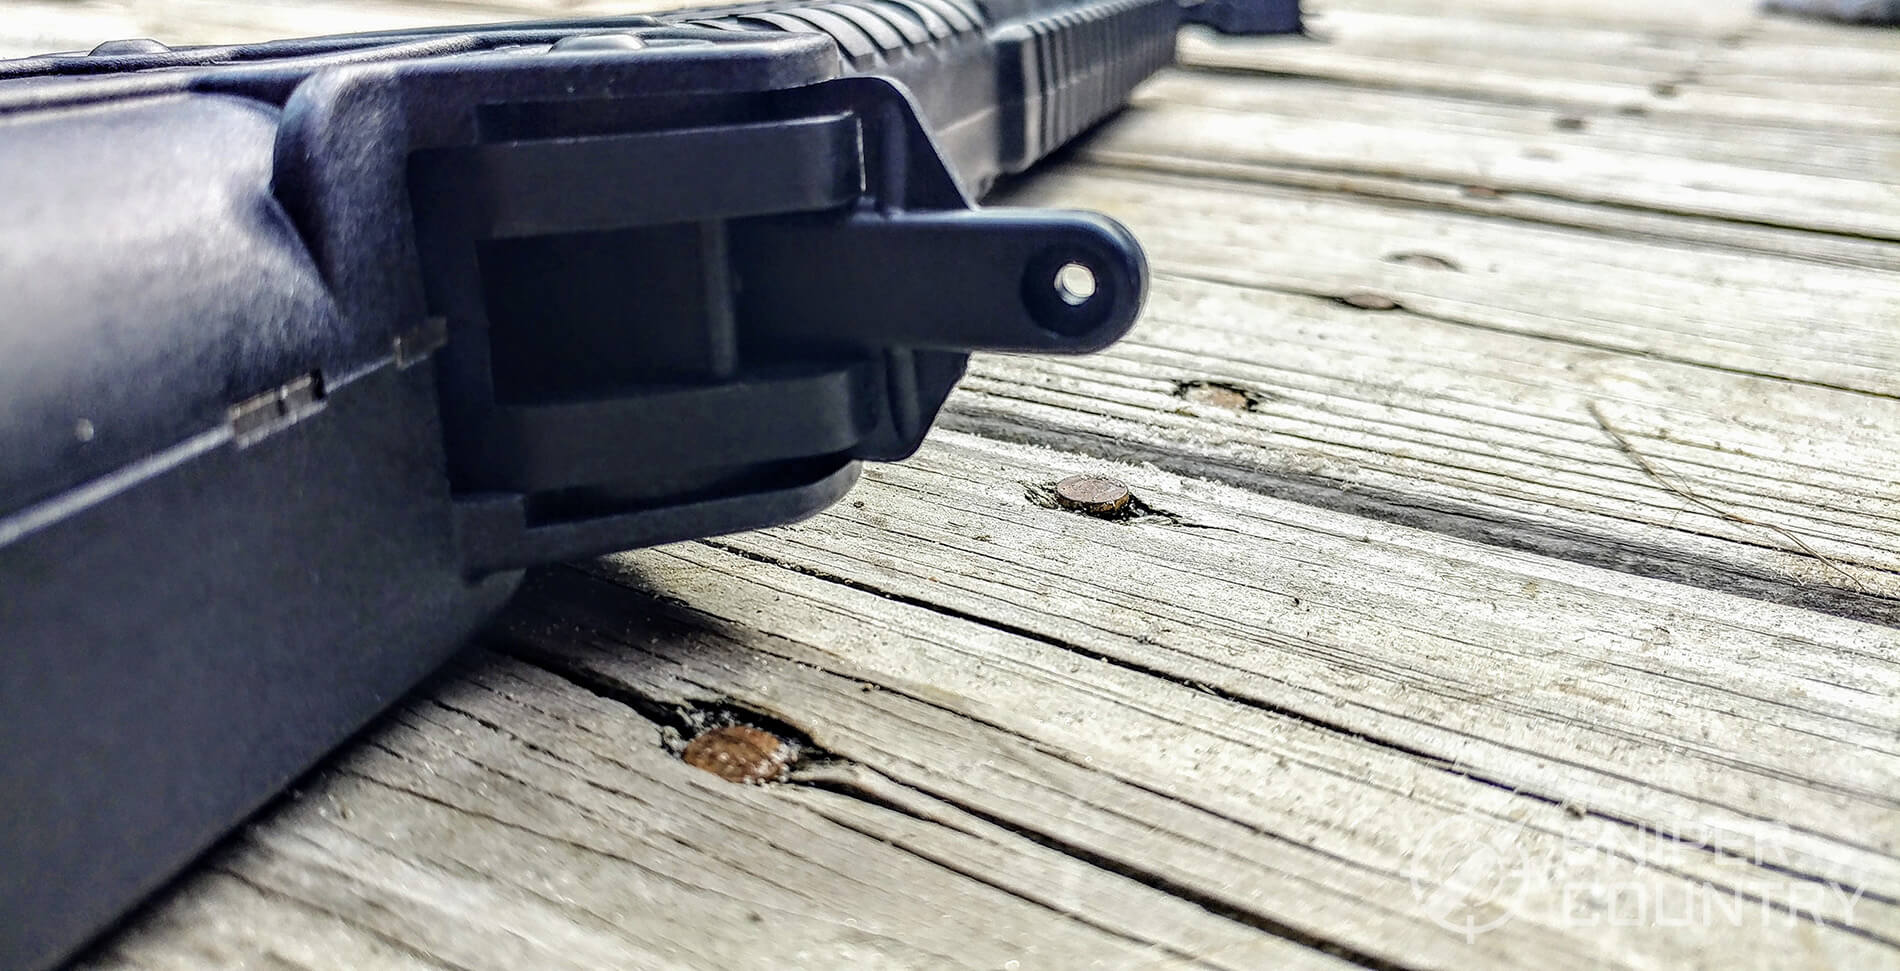 Kel-Tec SUB-2000 Rear Sight